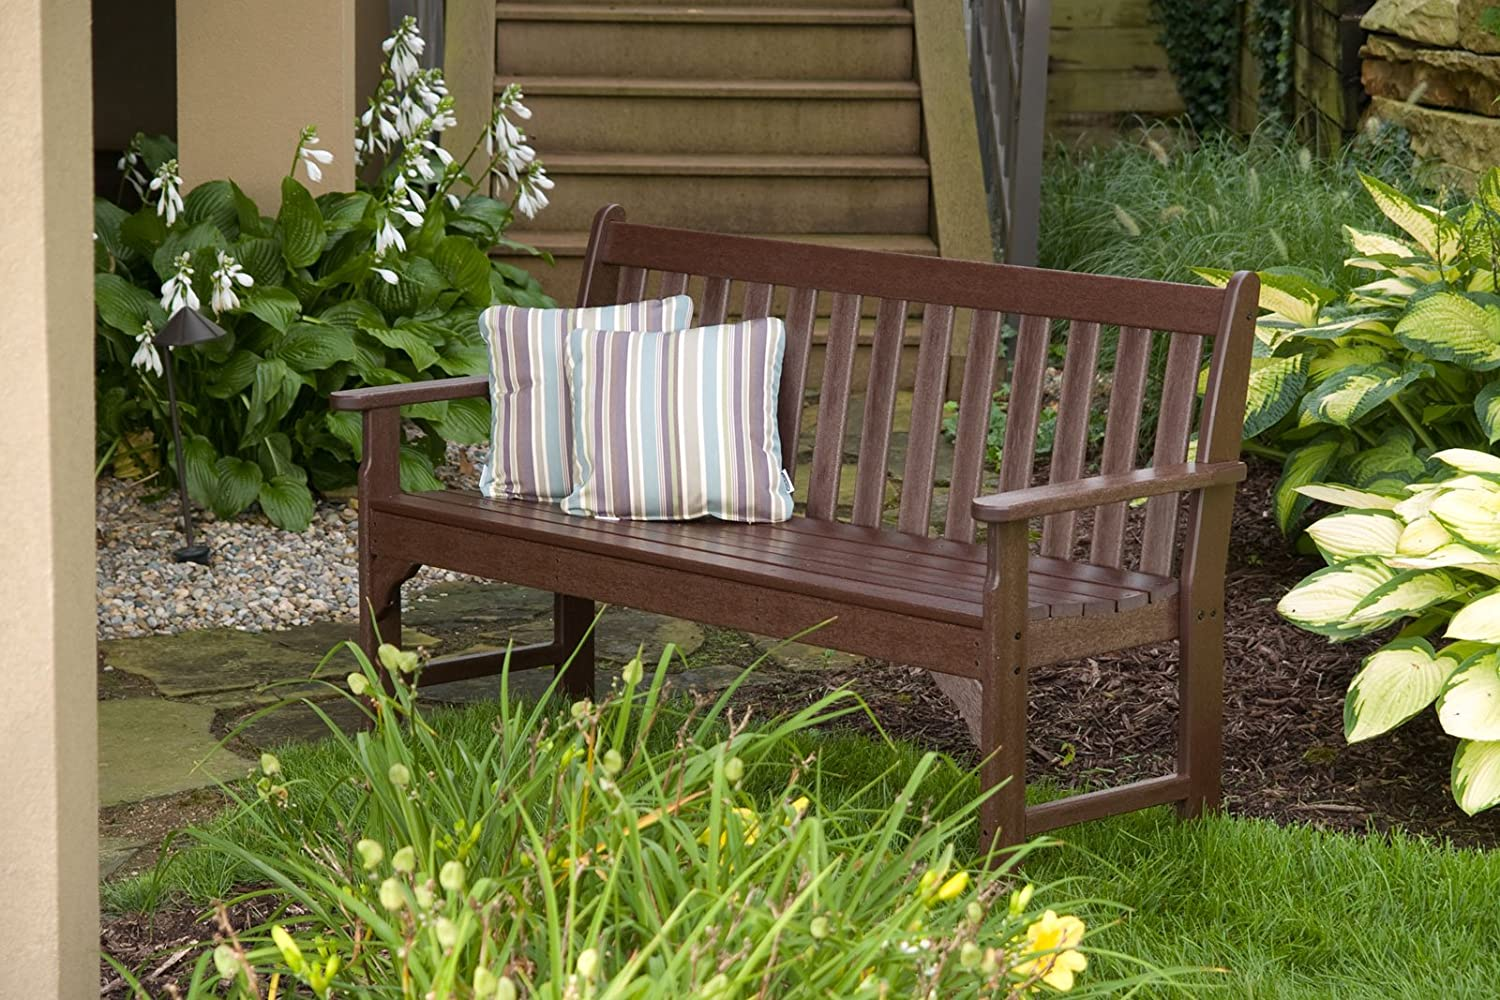 Best Outdoor Bench Review Guide For 2021-2022